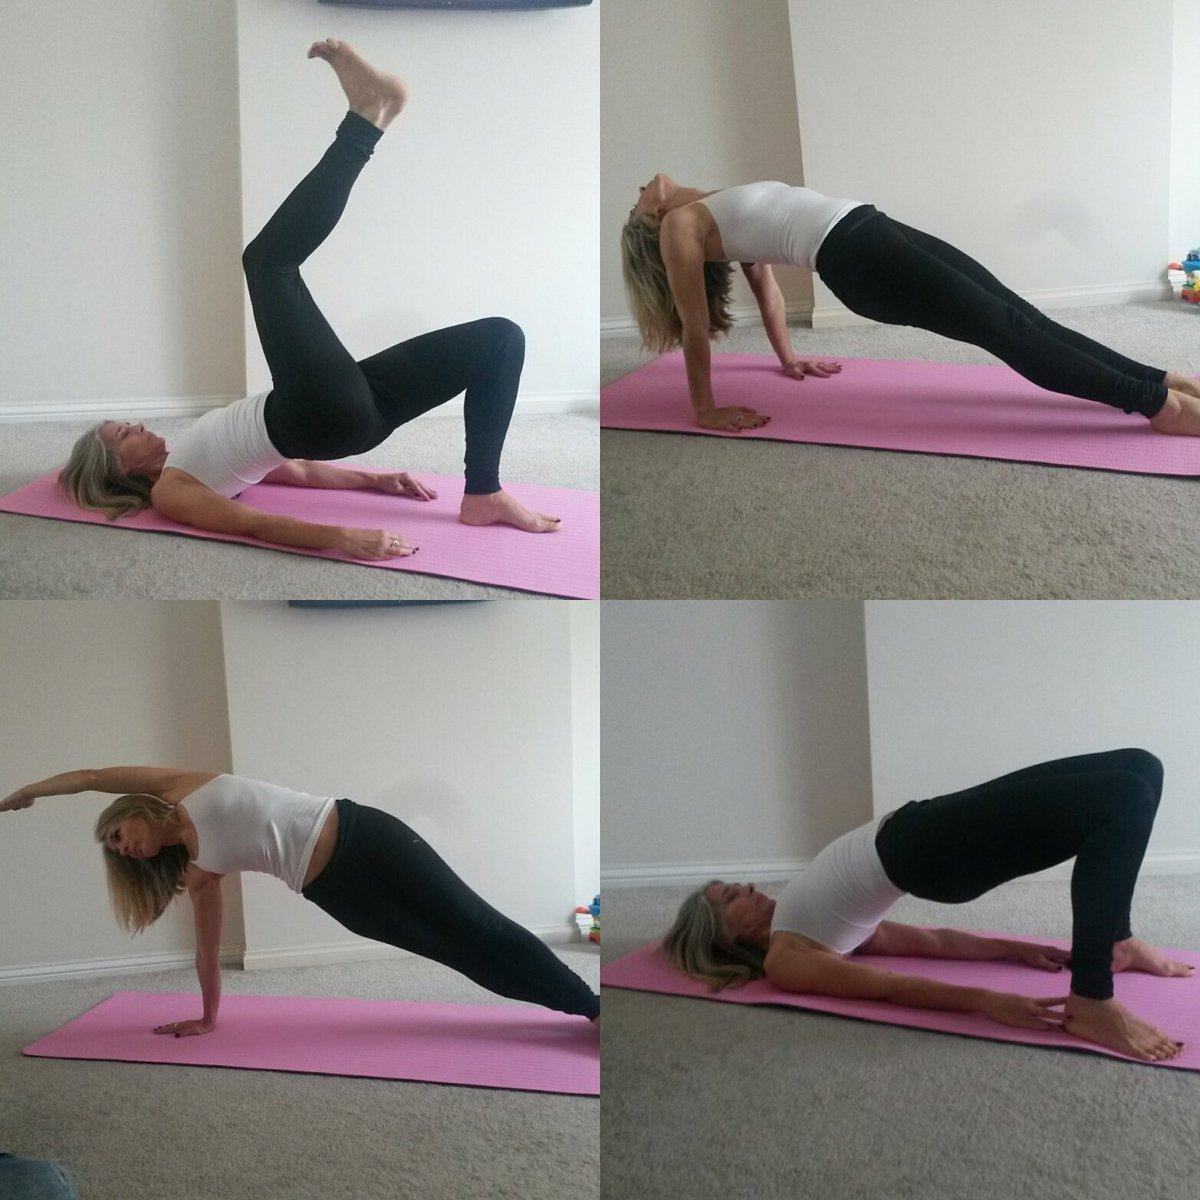 Only 2 Spaces Remain On My #21Dayyogachallenge 50% Discount Ends Tonight. Join Here https://t.co/UzTPNsl3WG #yoga https://t.co/Bo9xGH66Hs